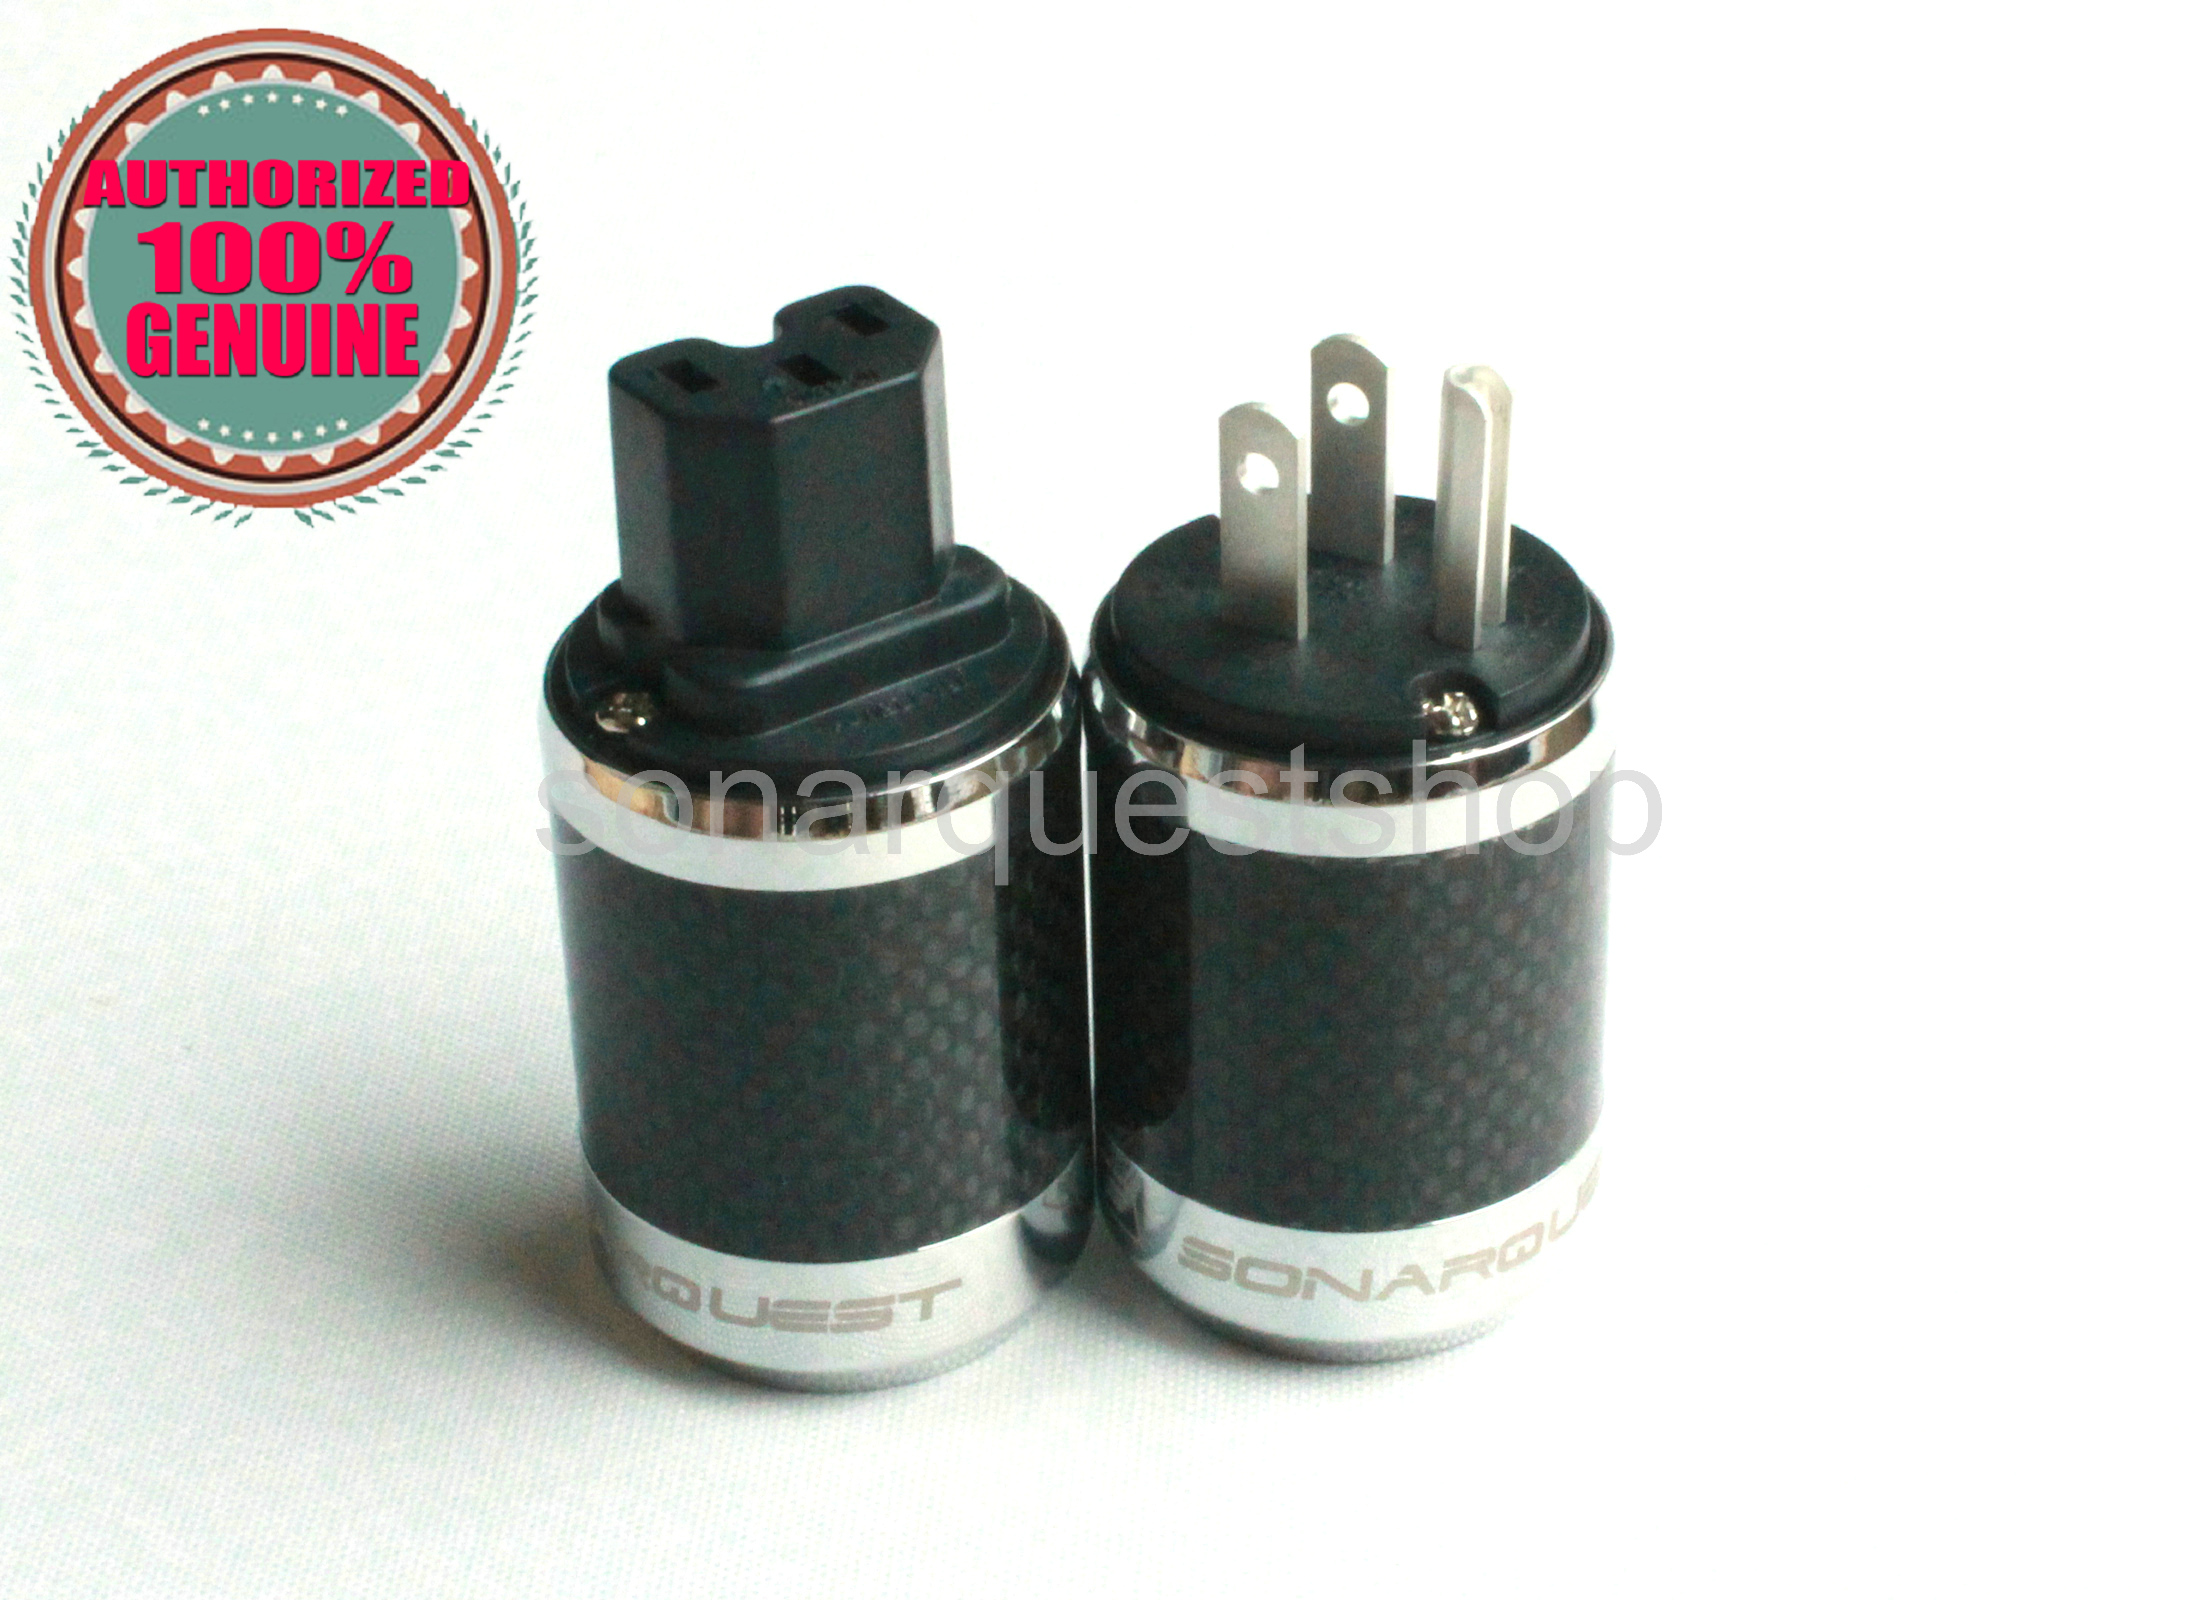 PYK SONARQUEST SQ-P39(Ag)B + SQ-C39(Ag)B US silver Plated BK Carbon fiber Power Plug & IEC Connector